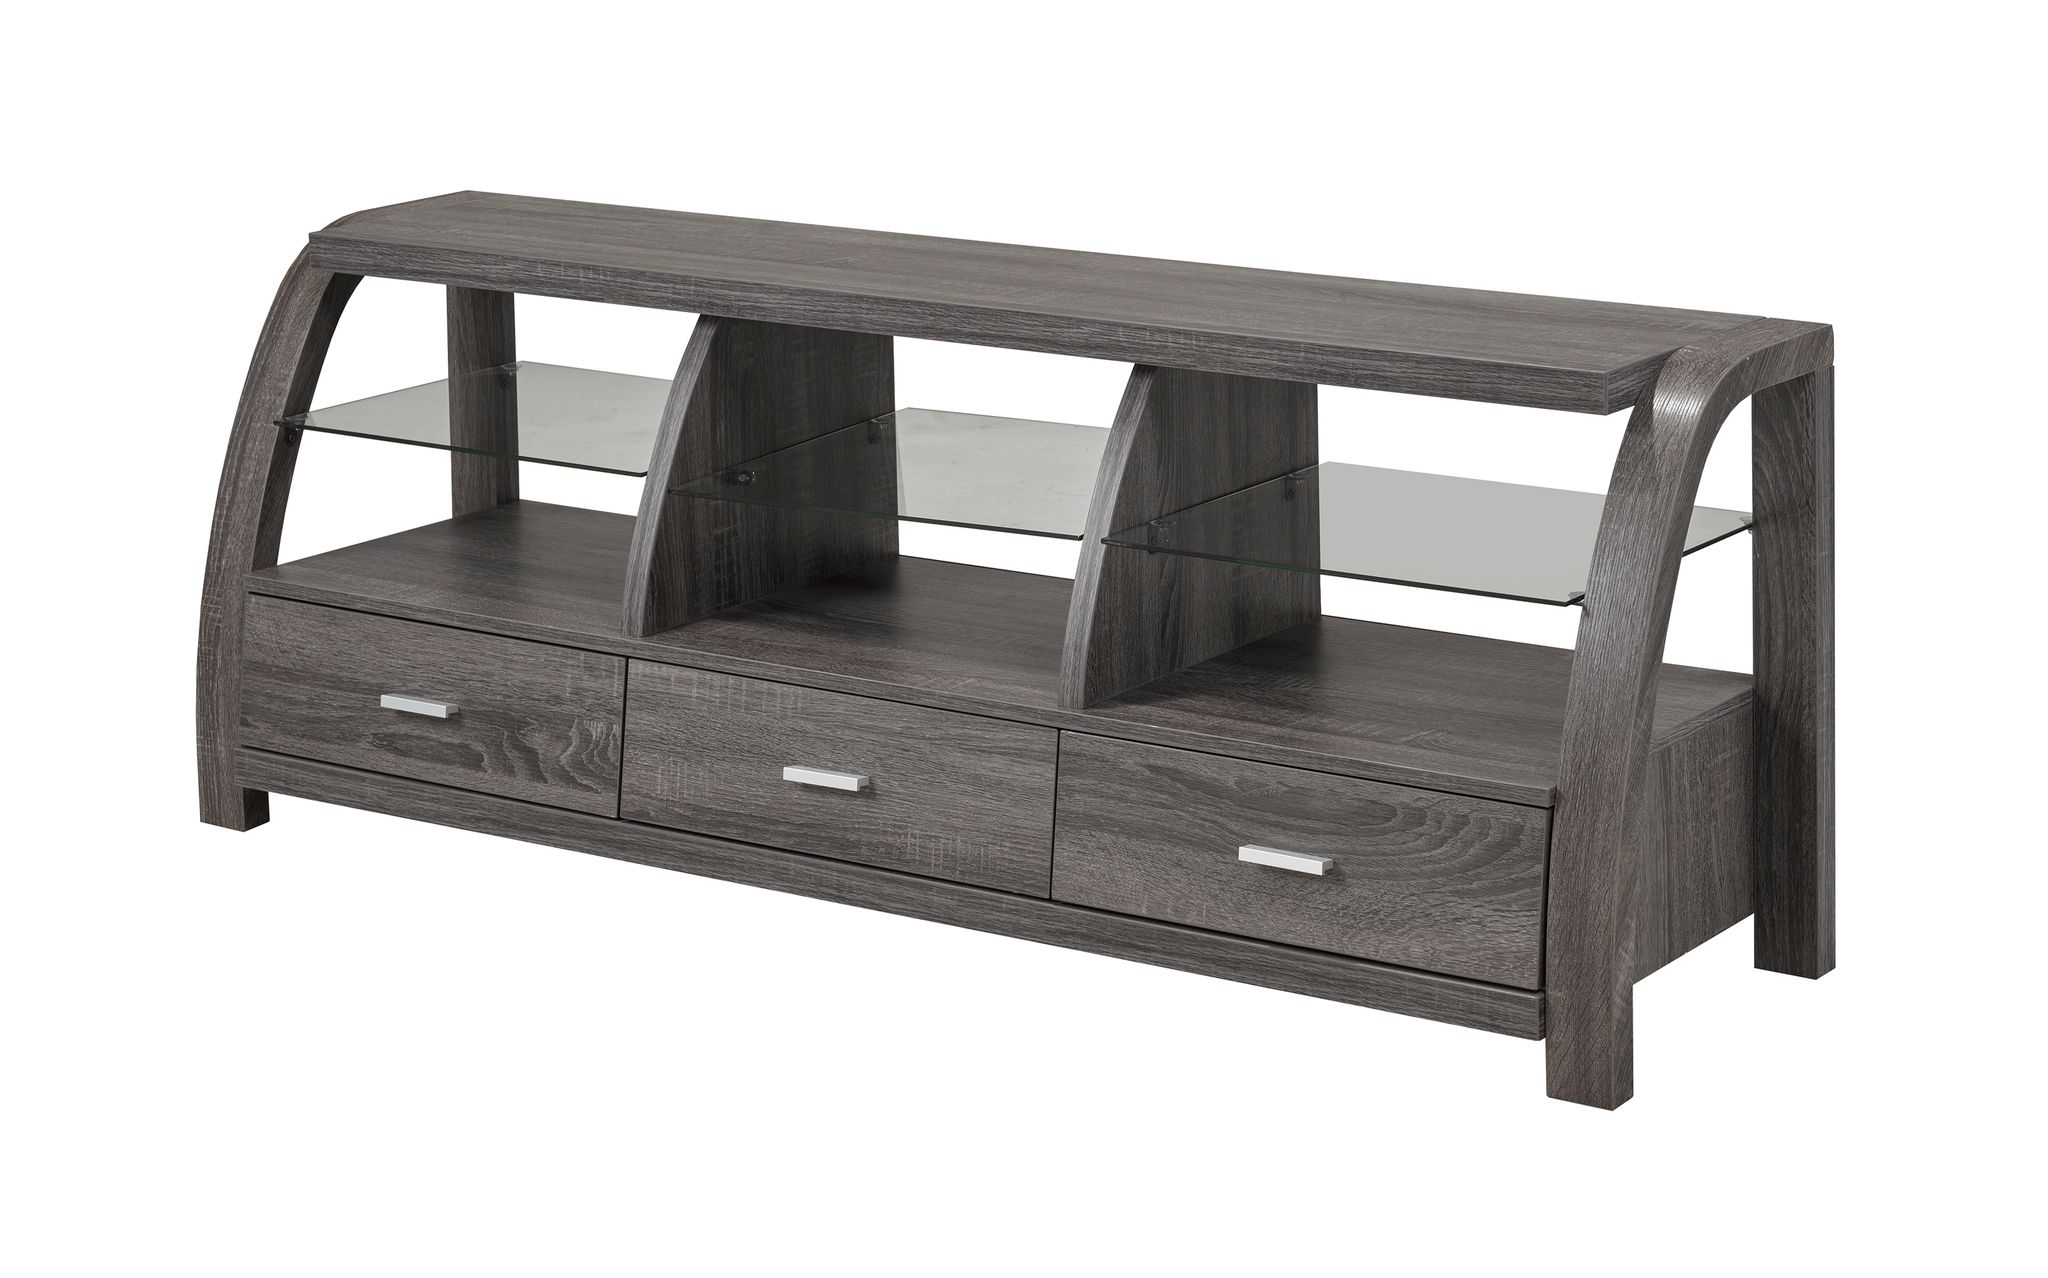 GLASS TV STAND DISTRESSED GREY